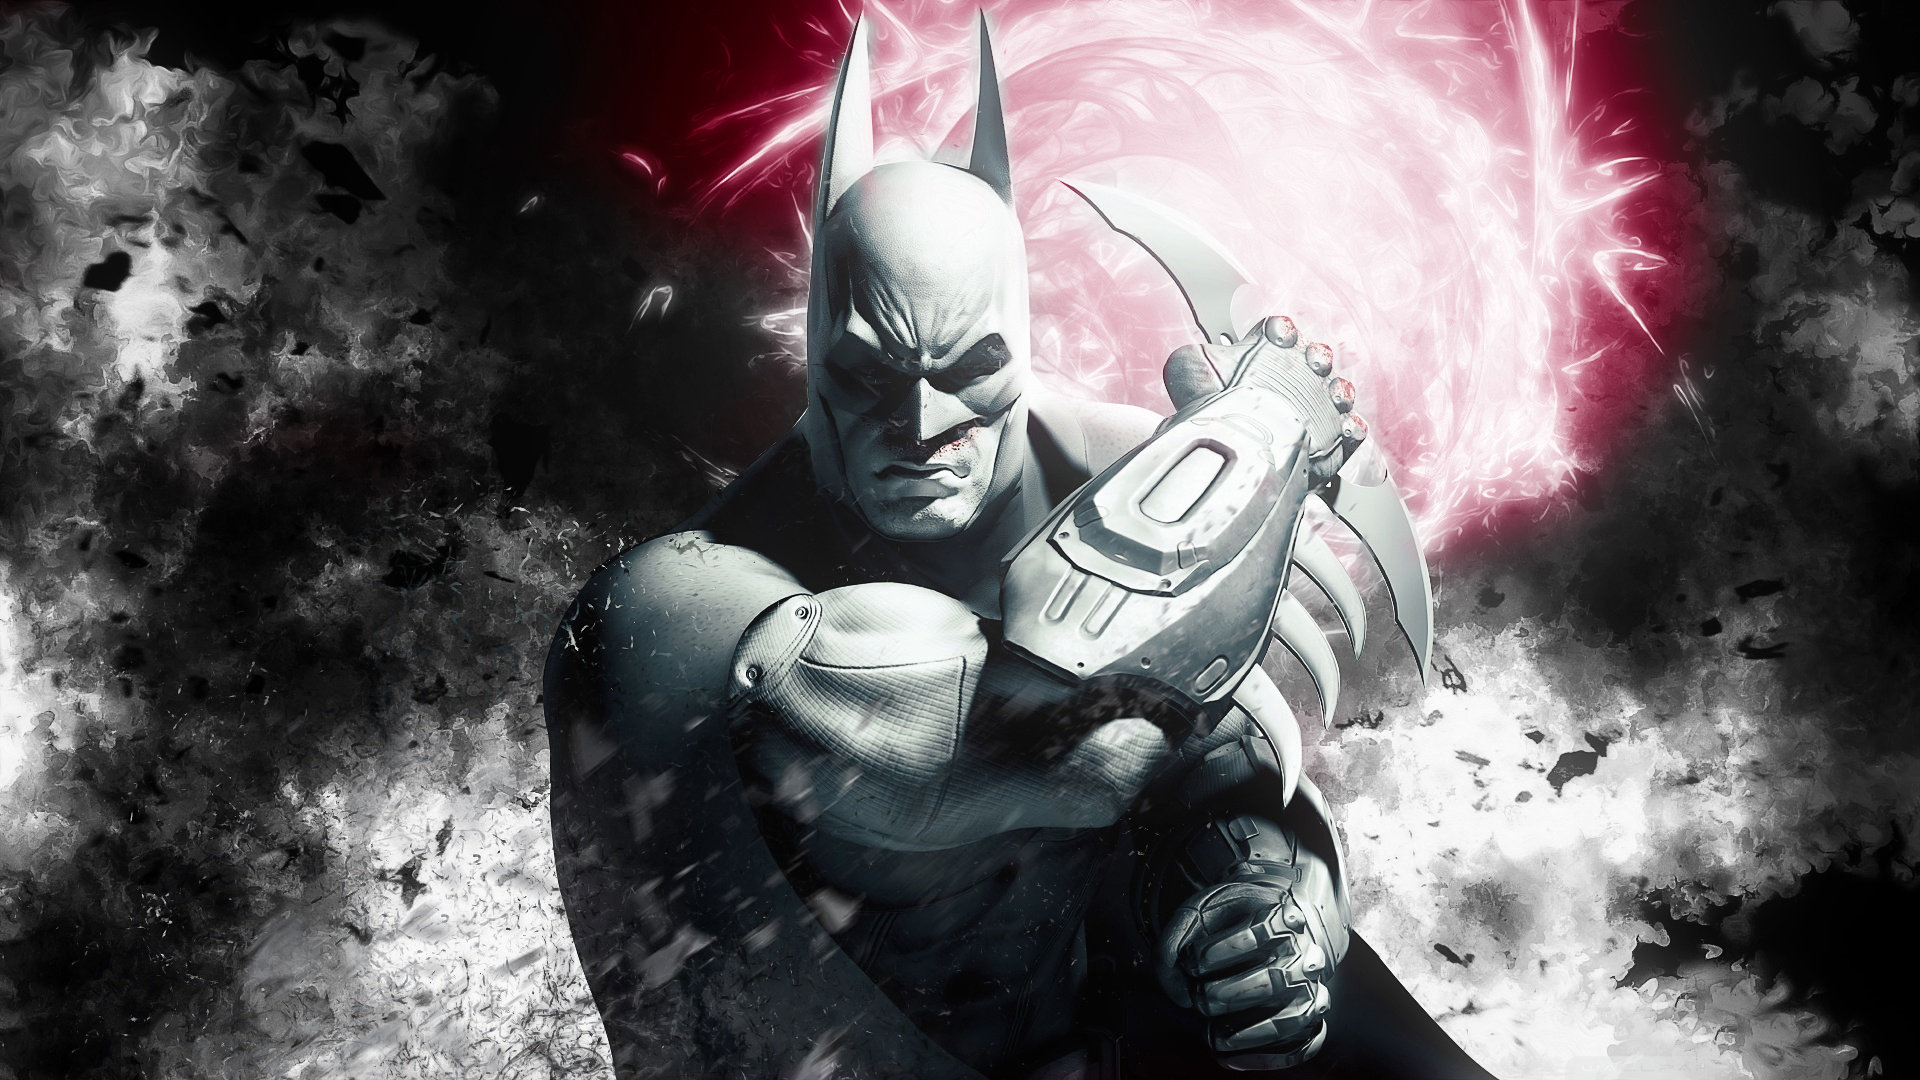 Batman Arkham City Wallpaper Hd 19201080 21880 HD Wallpaper Res 1920x1080